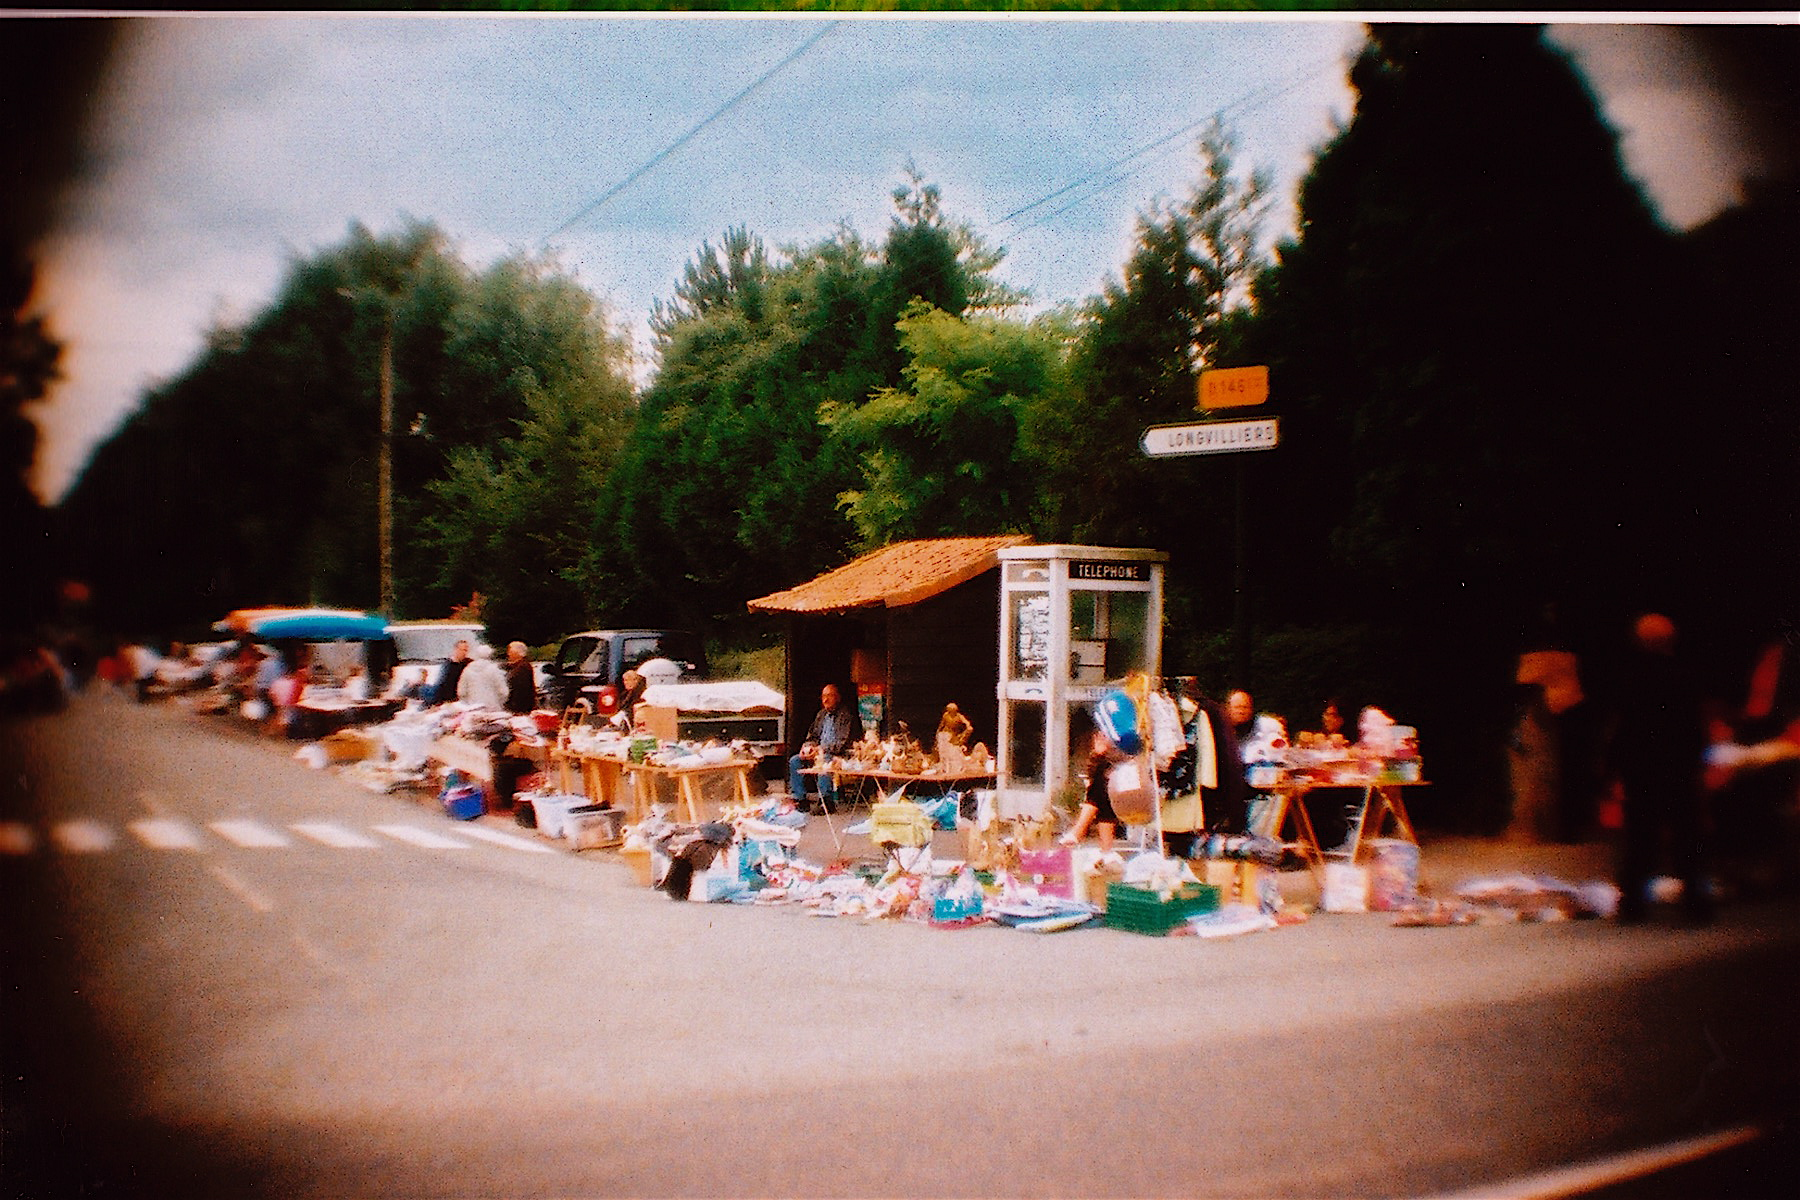 A brocante (flea market) where they found things they might need. At this one they bought a harmonica and a wooden-handled corkscrew.